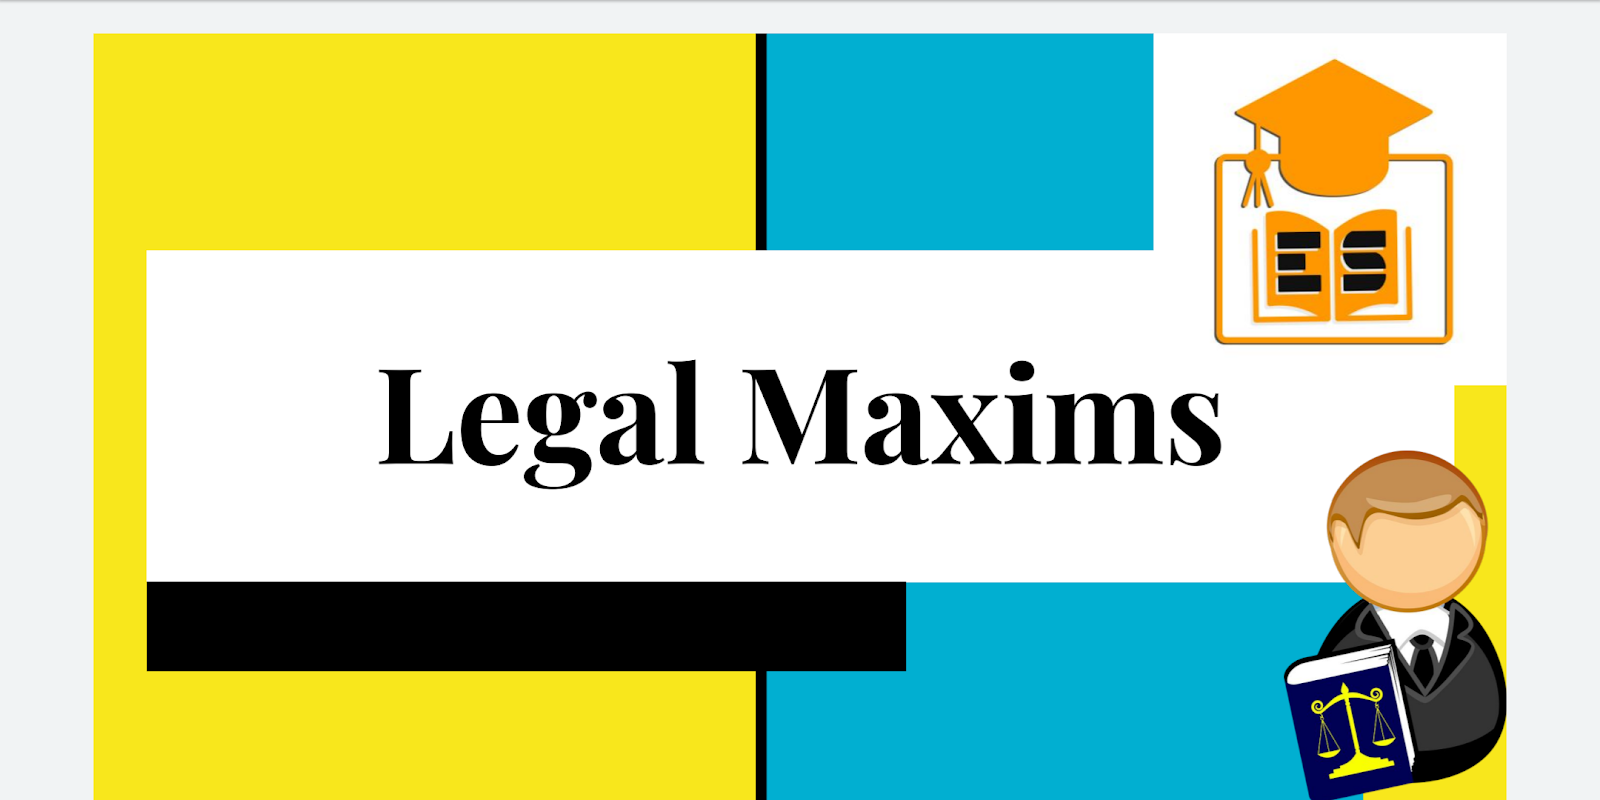 Legal Maxims | What is legal maxims and its examples